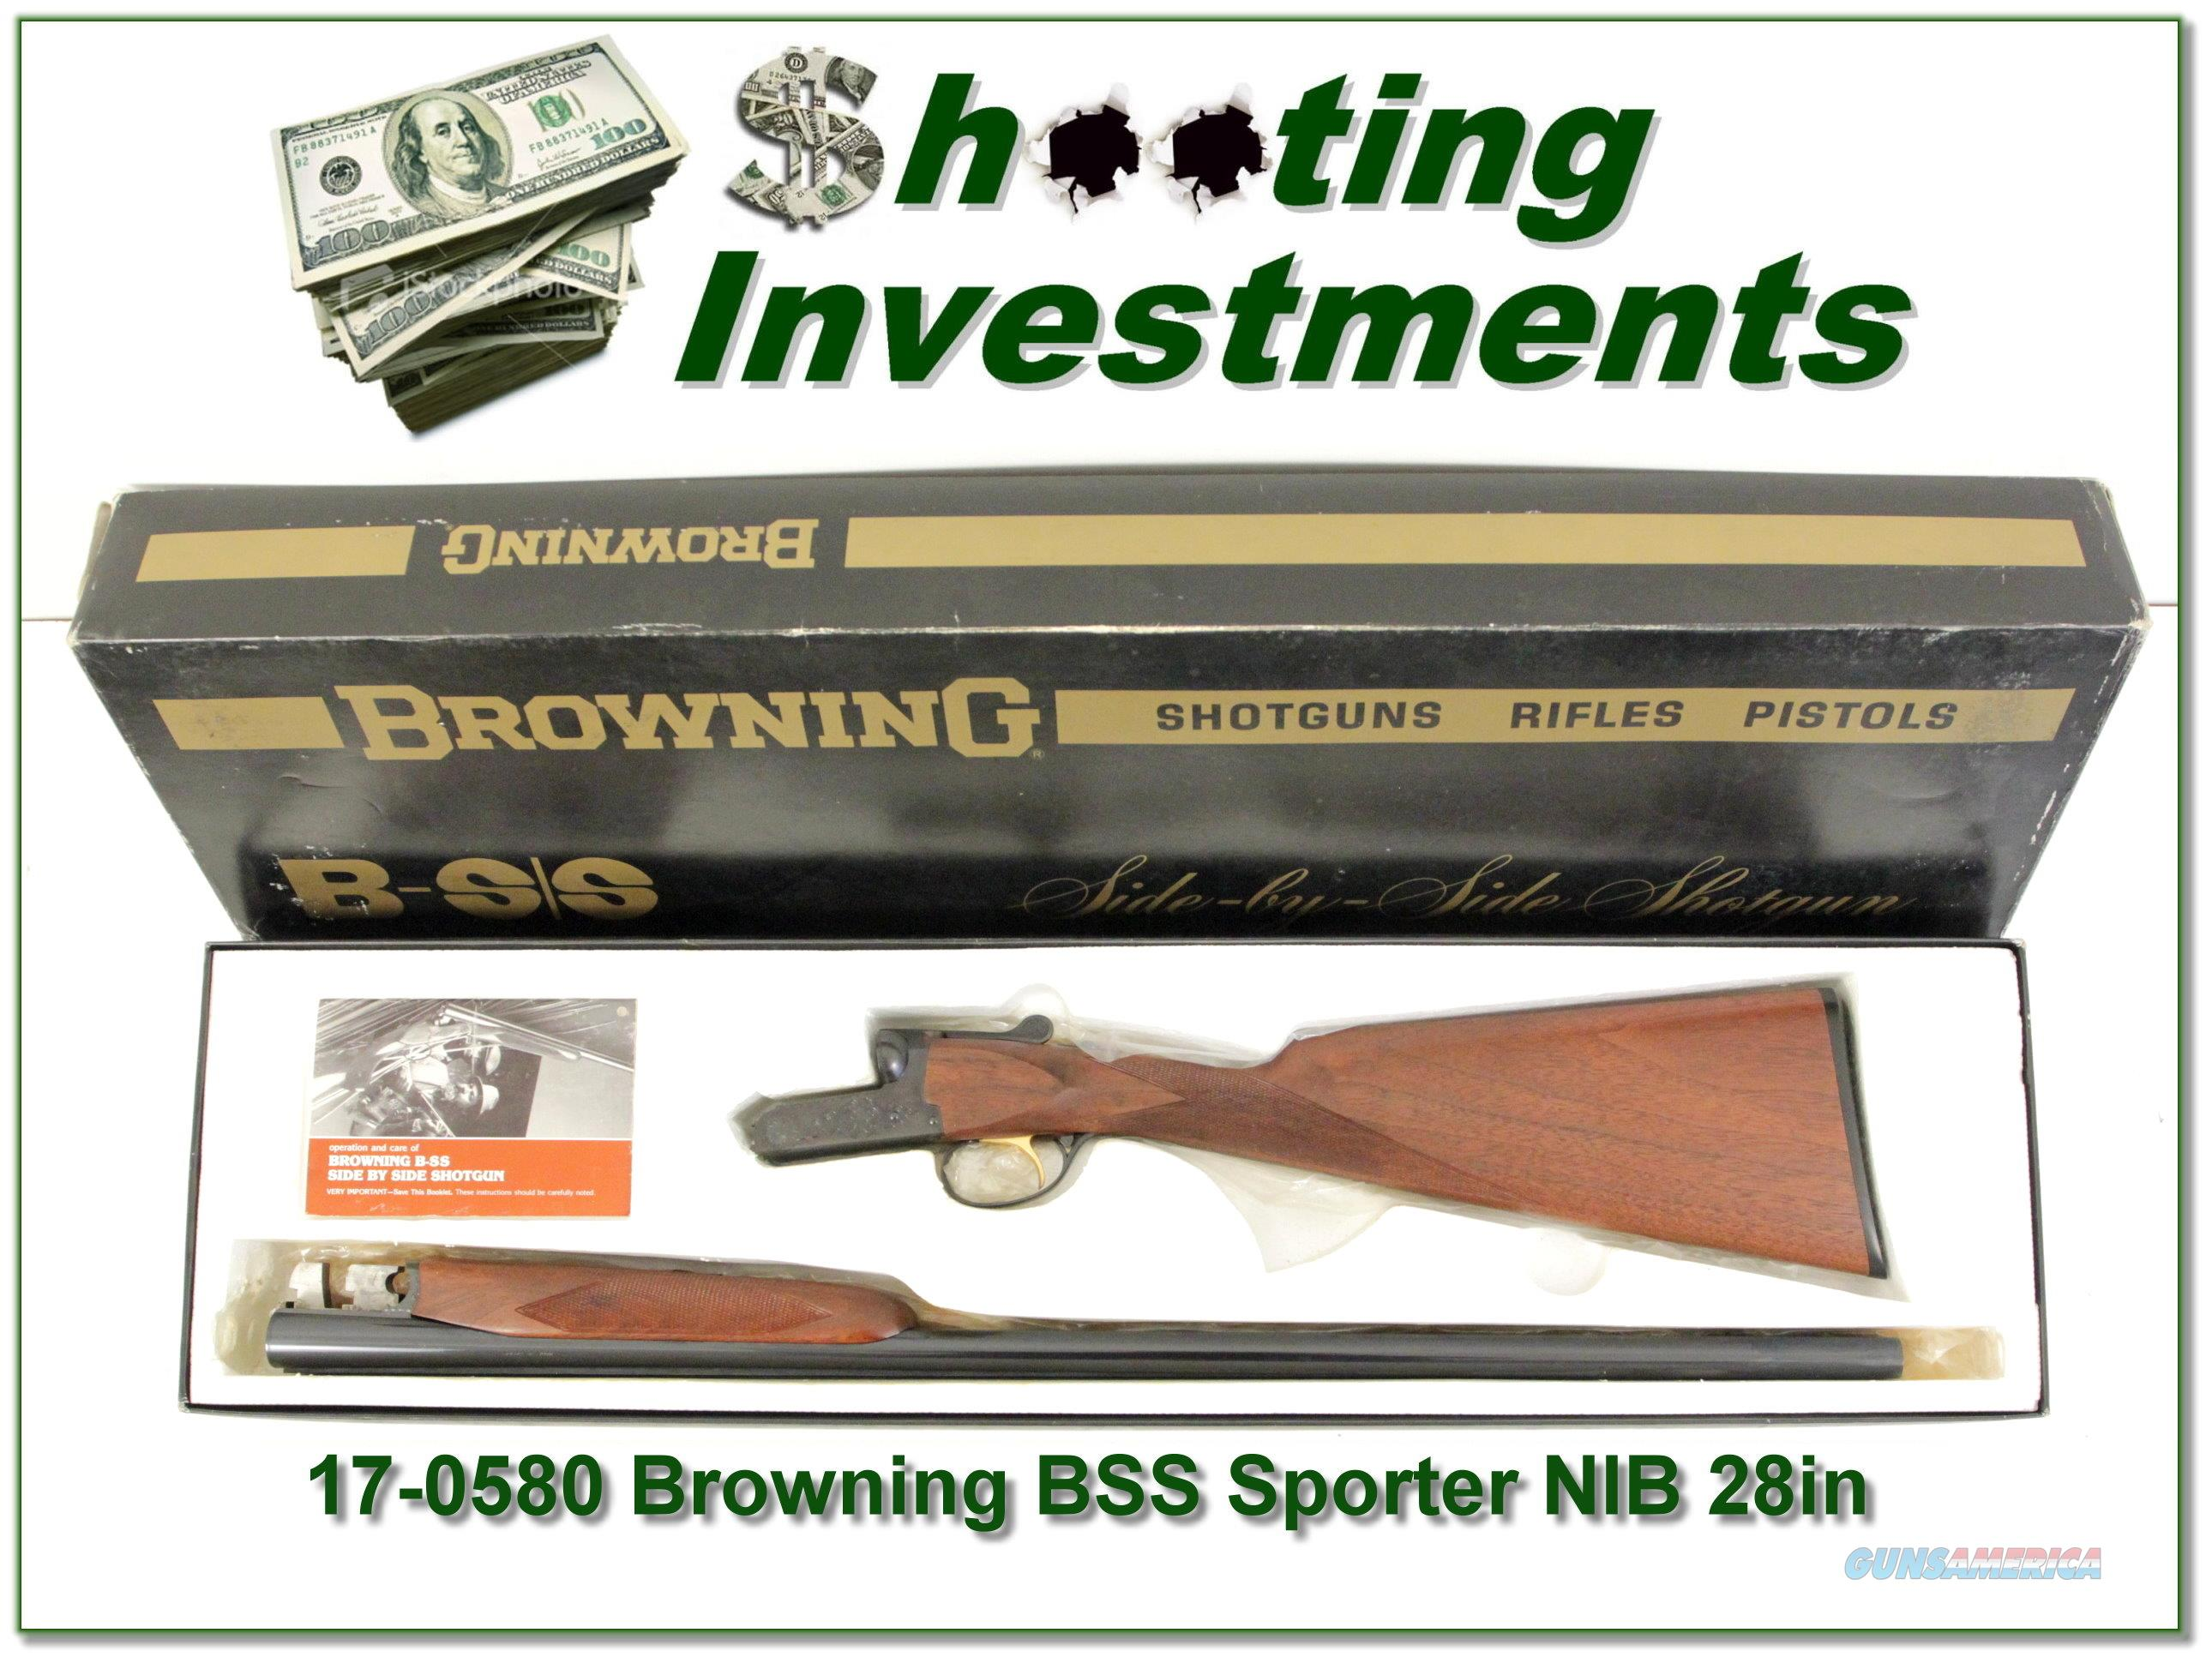 Browning BSS Sporter 20 Ga unfired in box!  Guns > Shotguns > Browning Shotguns > Side by Sides